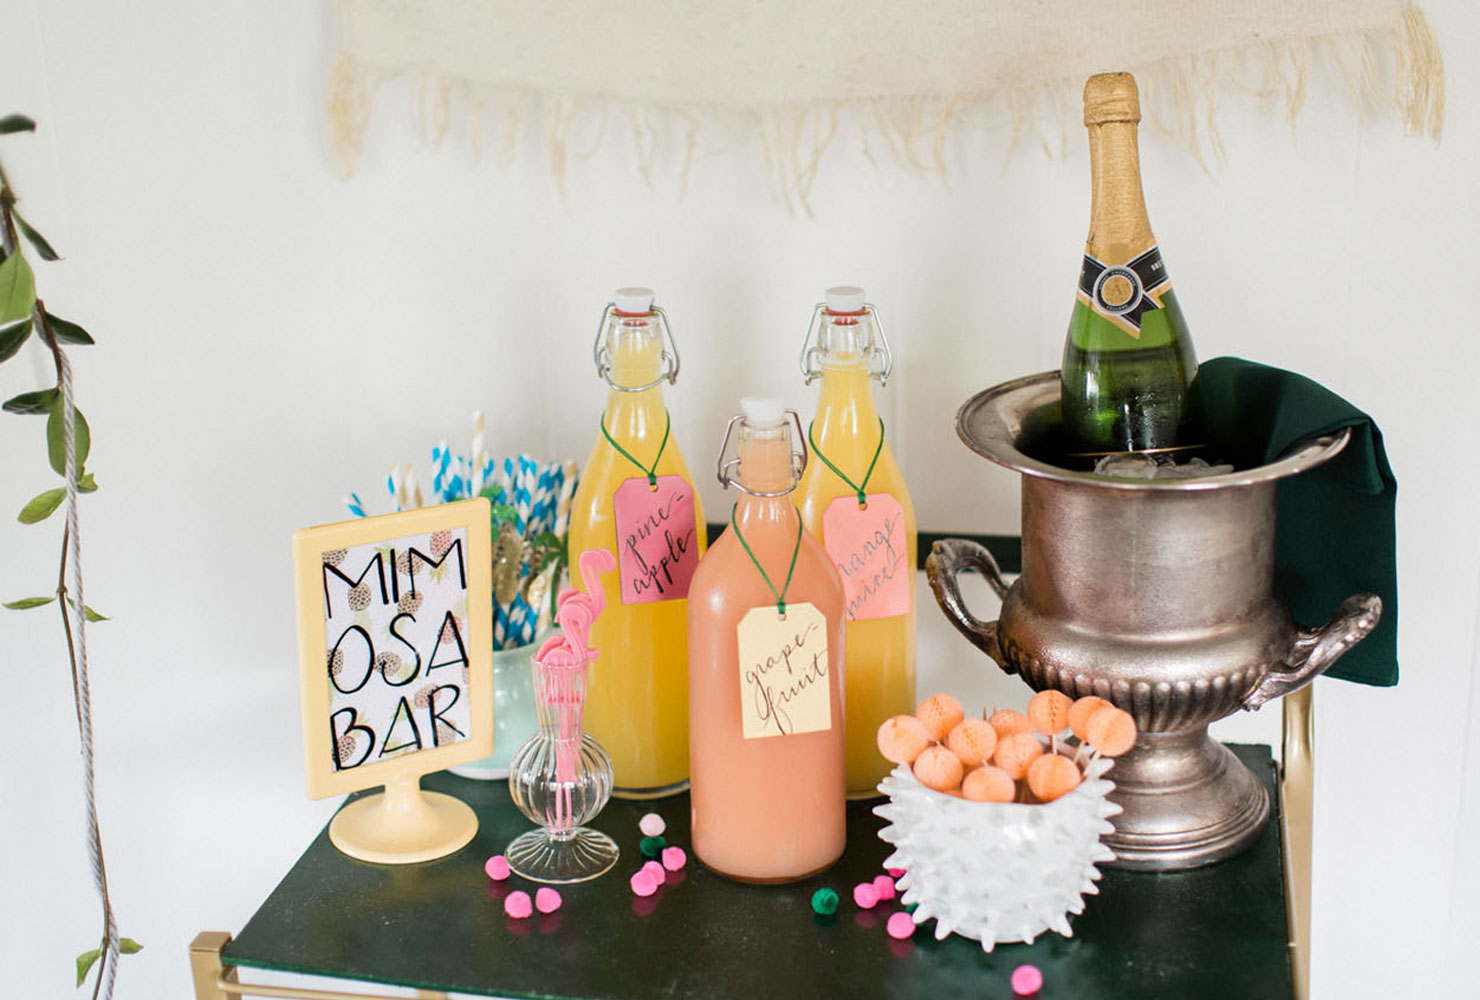 Tropical mimosa bar with hanging greenery